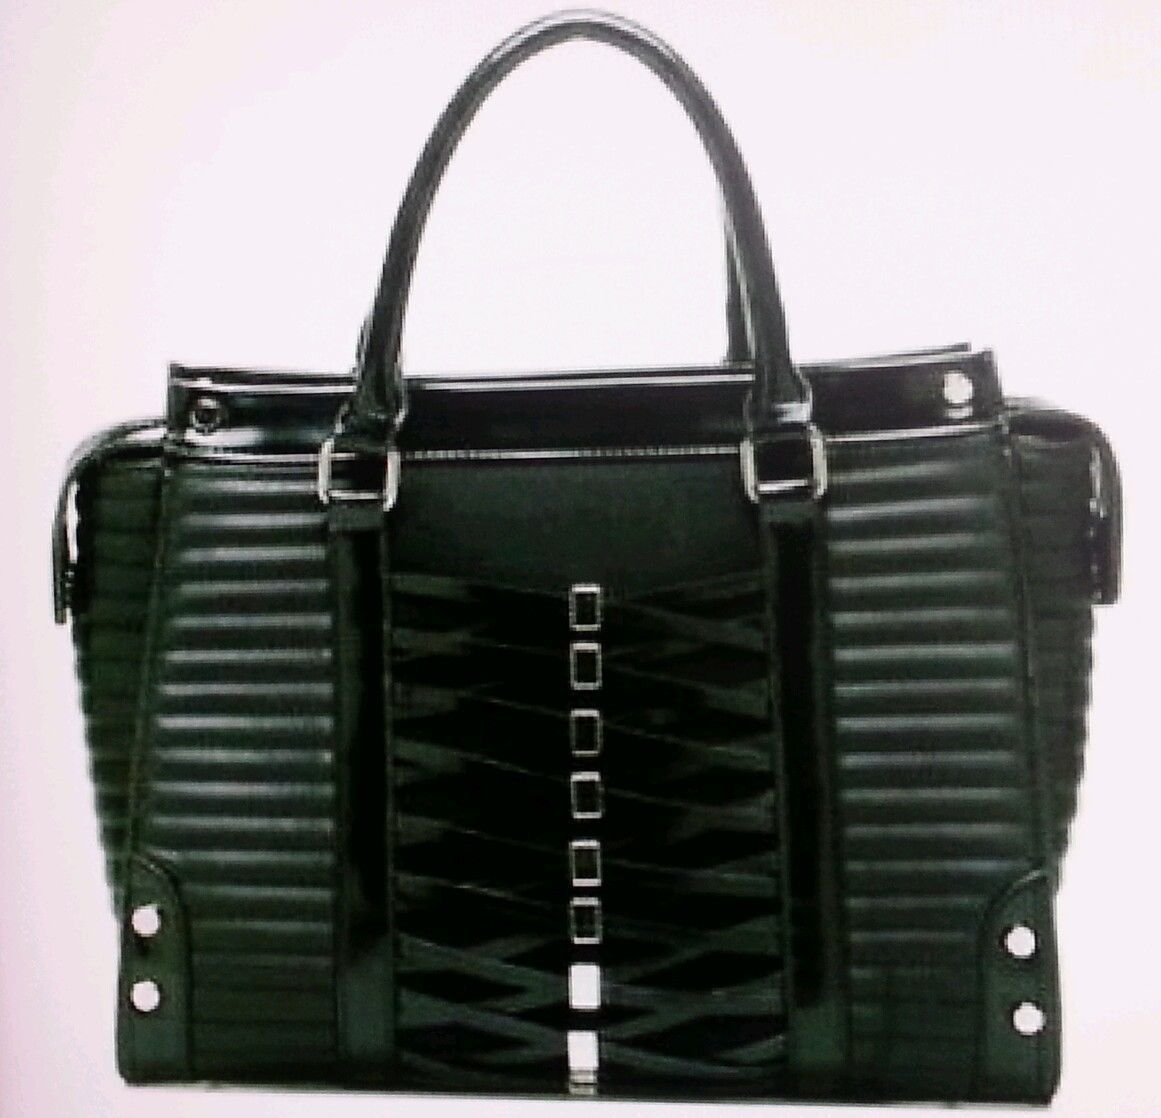 Furano Satchel Purse Gx By Gwen Stefani Black Corset Faux Bag Hot Y Ebay